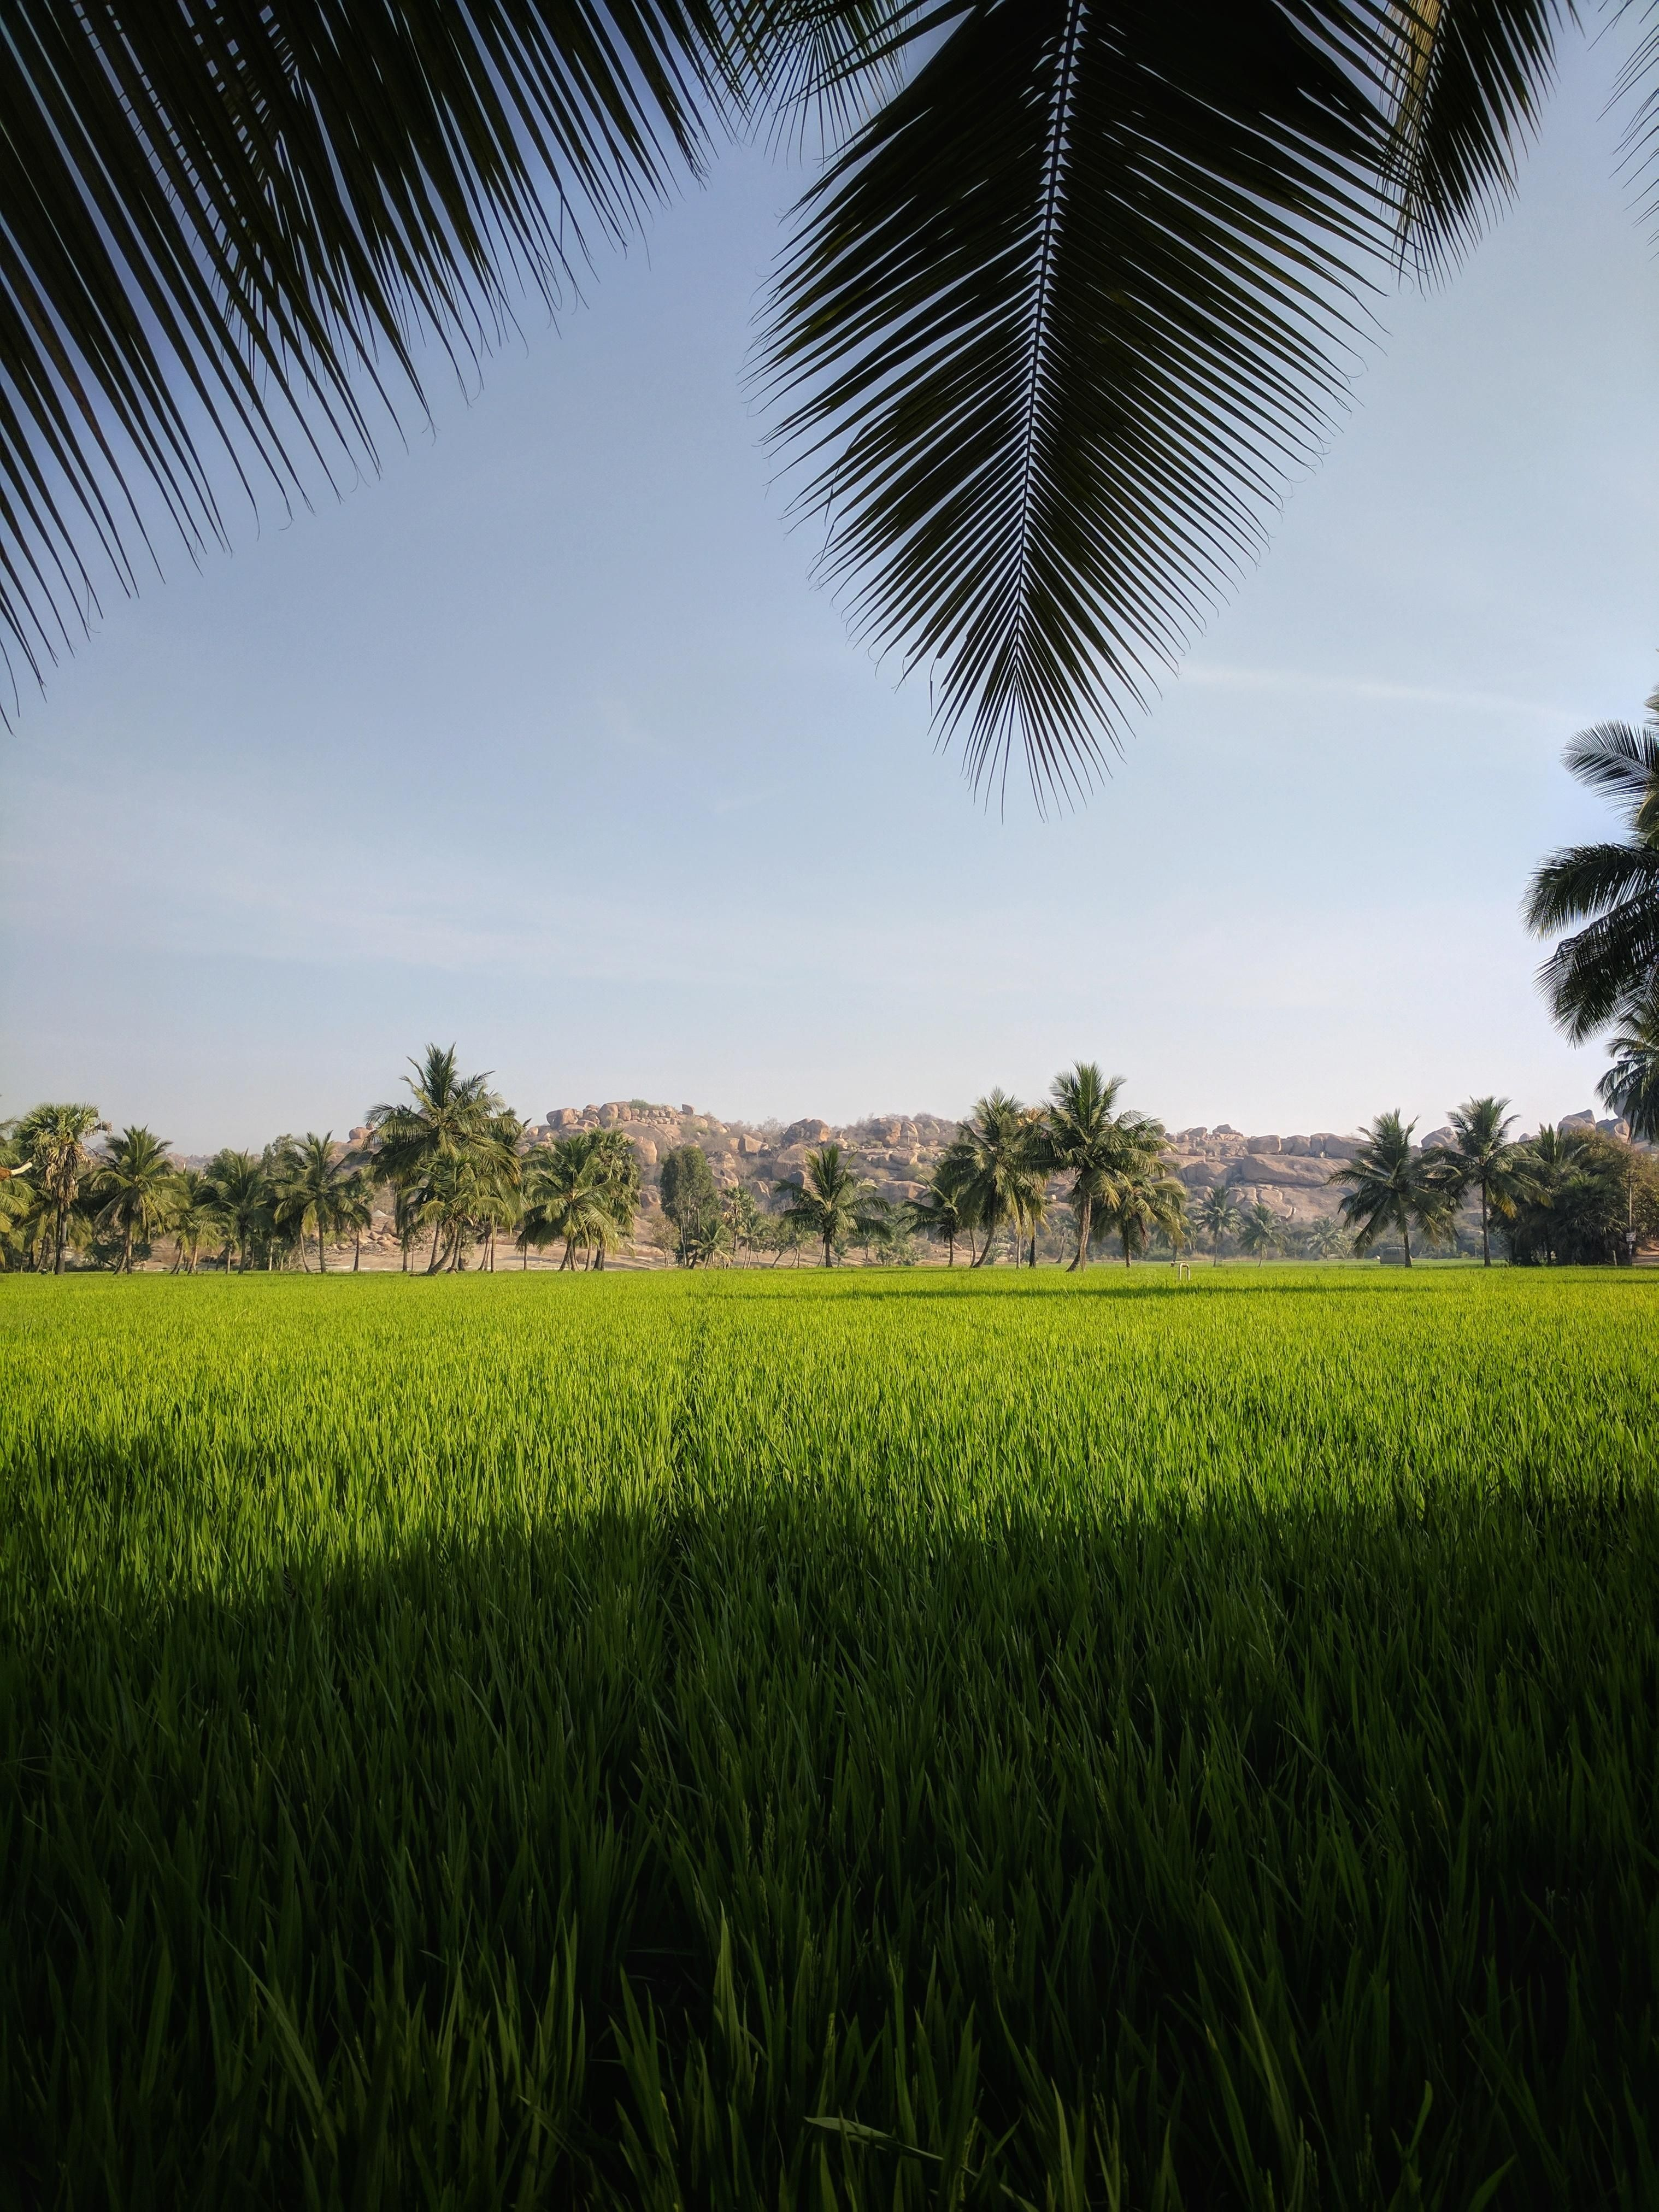 Paddy Fields In Hampi An Ancient Village In South Indian State Of Karnataka 3036 X 4048 Oc Https Village Photography Landscape Photography Indian Village